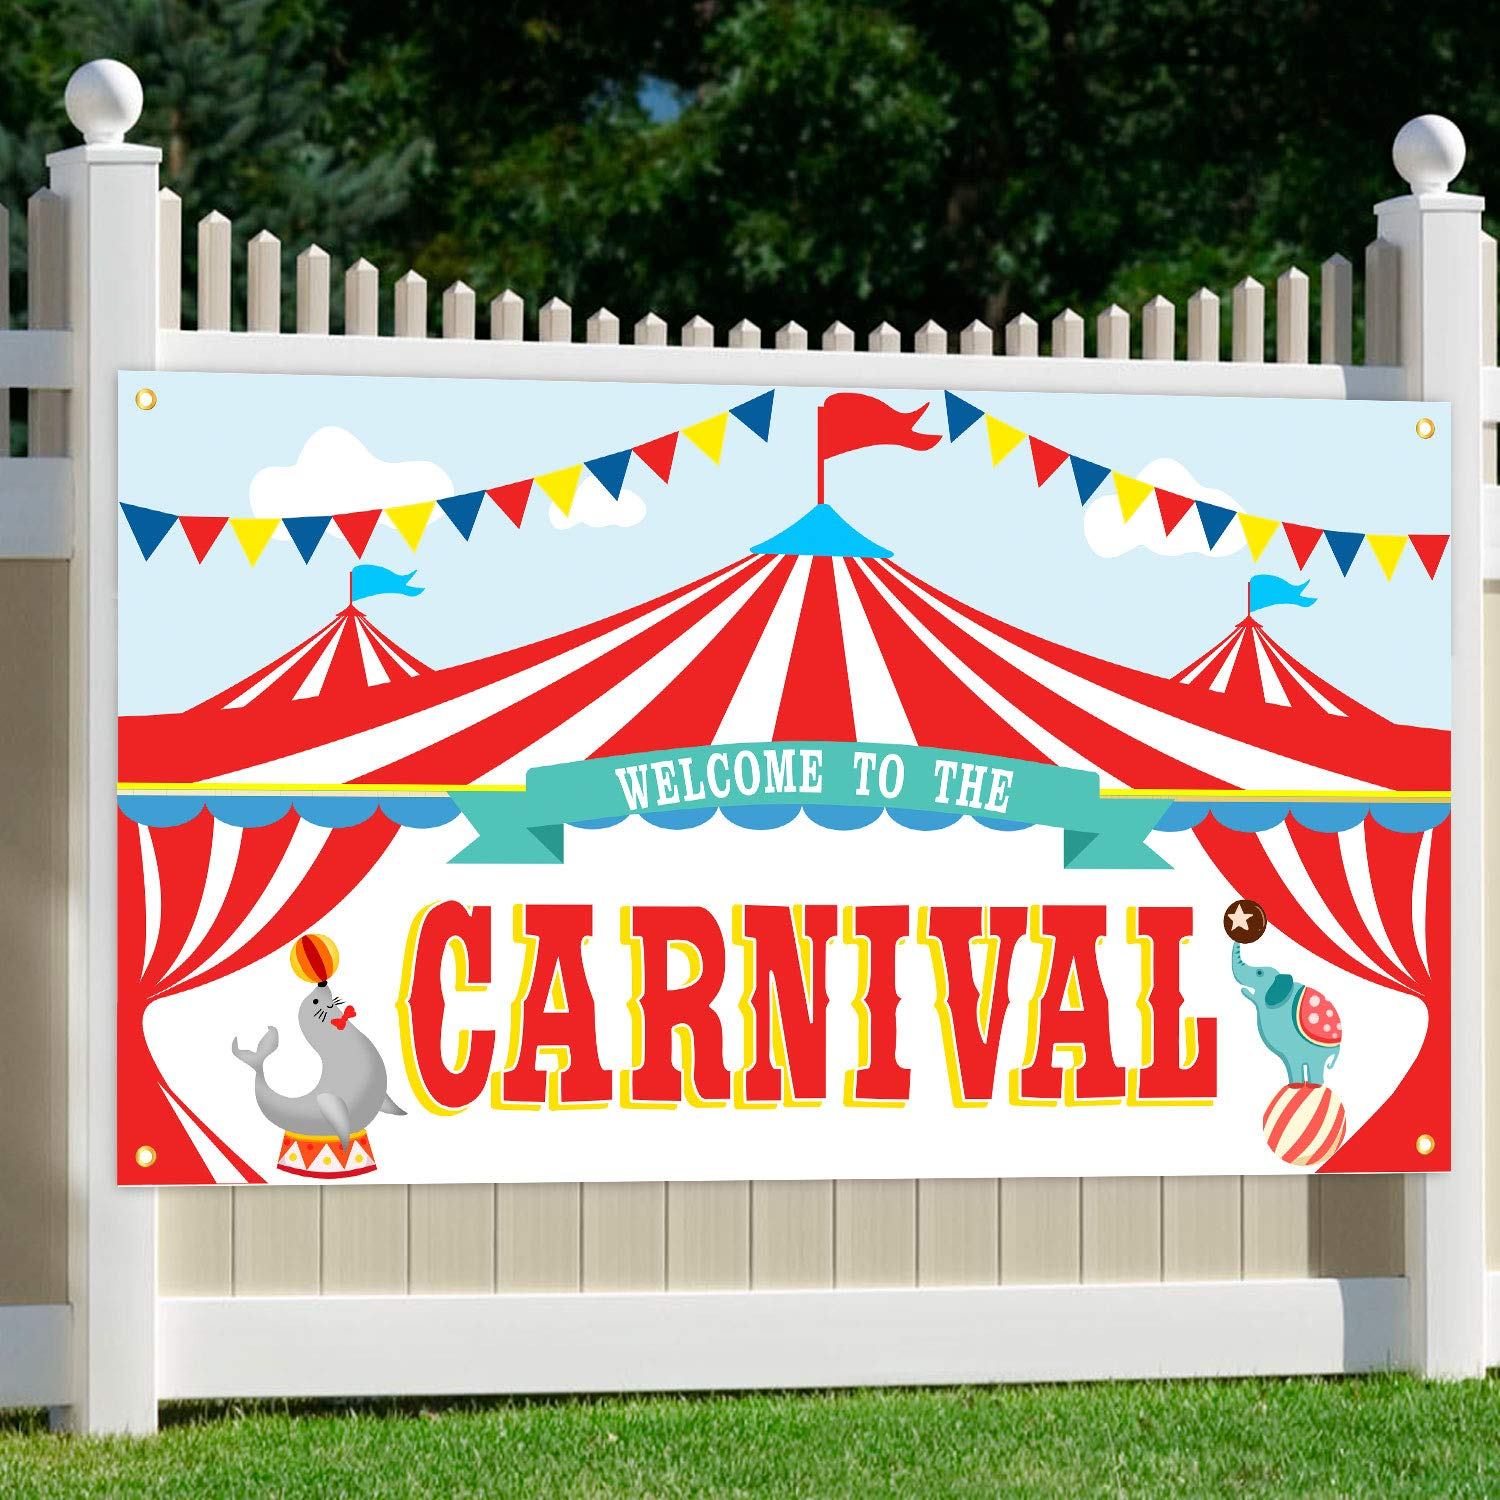 ORIENTAL CHERRY Carnival Party Supplies | Circus Decorations | Carnival Theme Large Backdrop Banner Sign for Kids Birthday School Outdoor Home Wall Decor